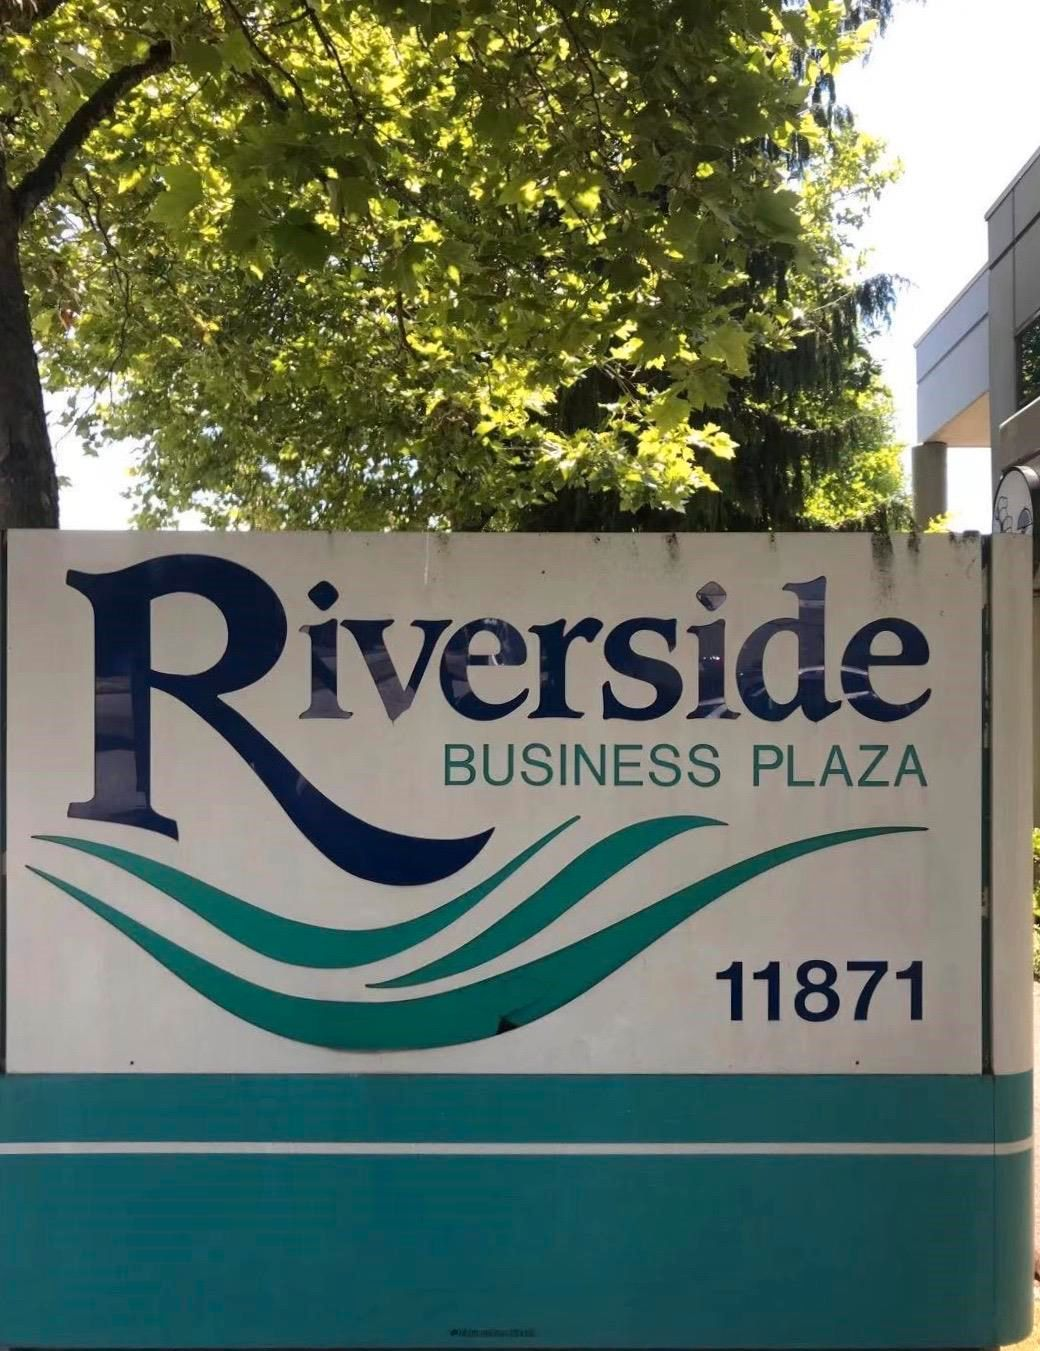 """Main Photo: 1135 11871 HORSESHOE Way in Richmond: Gilmore Industrial for sale in """"RIVERSIDE BUSINESS PLAZA"""" : MLS®# C8038421"""